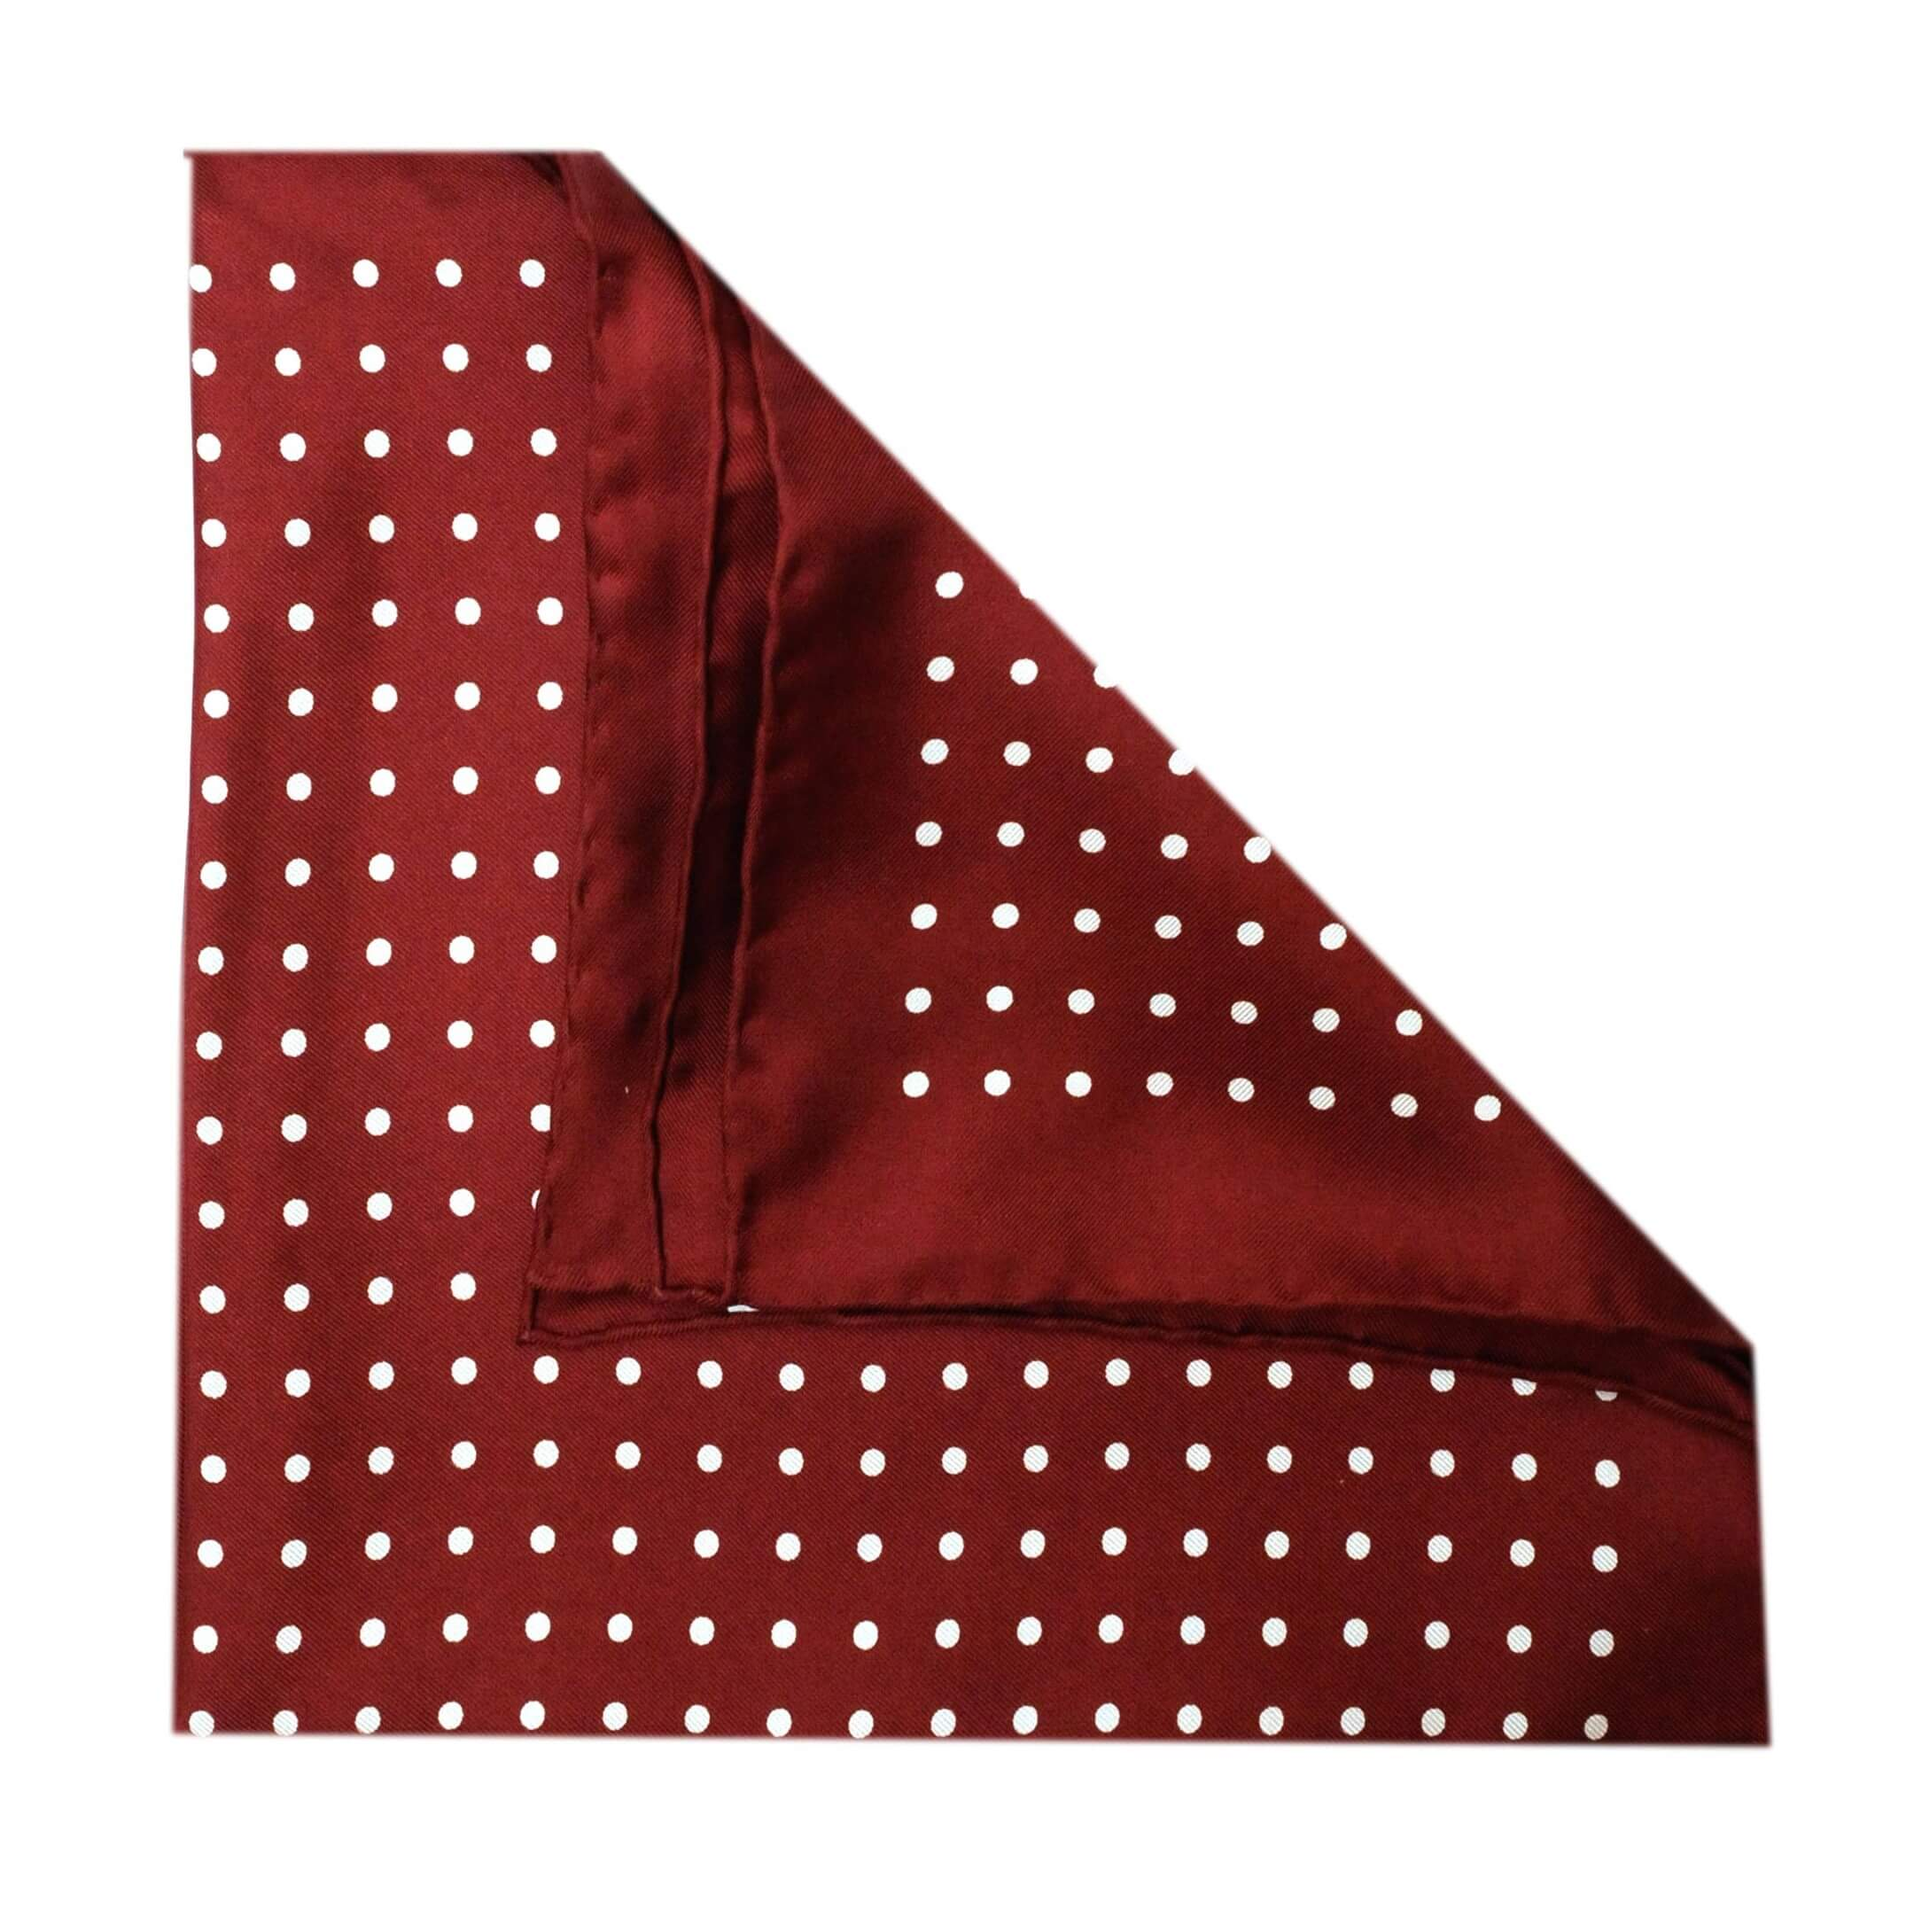 Jack - Polka Dot Silk Pocket Square in Burgundy with White Spots